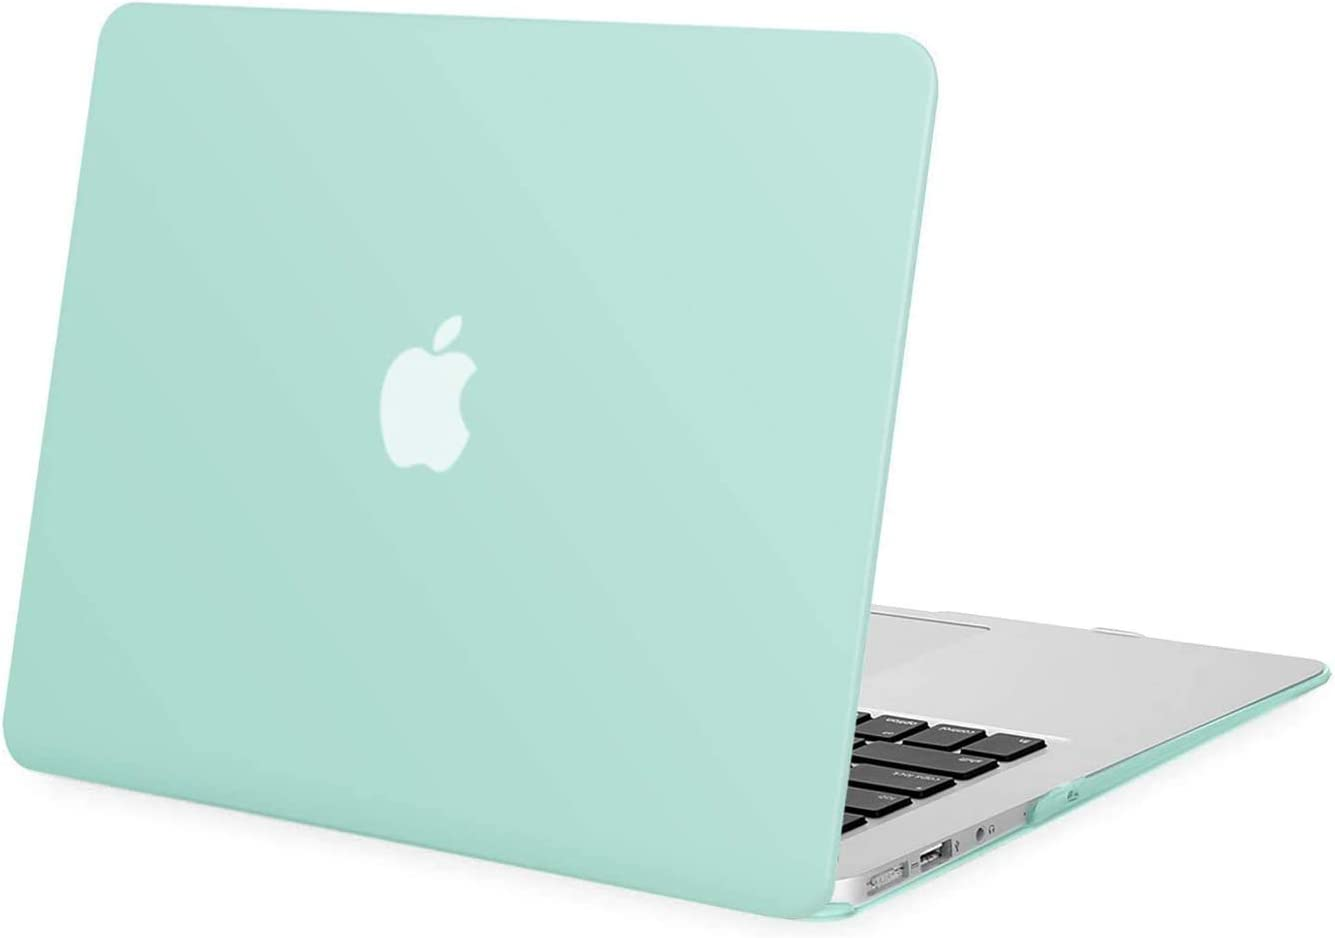 MOSISO MacBook Air 13 inch Case (Models: A1369 & A1466, Older Version 2010-2017 Release), Plastic Hard Shell Case Cover Only Compatible with MacBook Air 13 inch, Mint Green